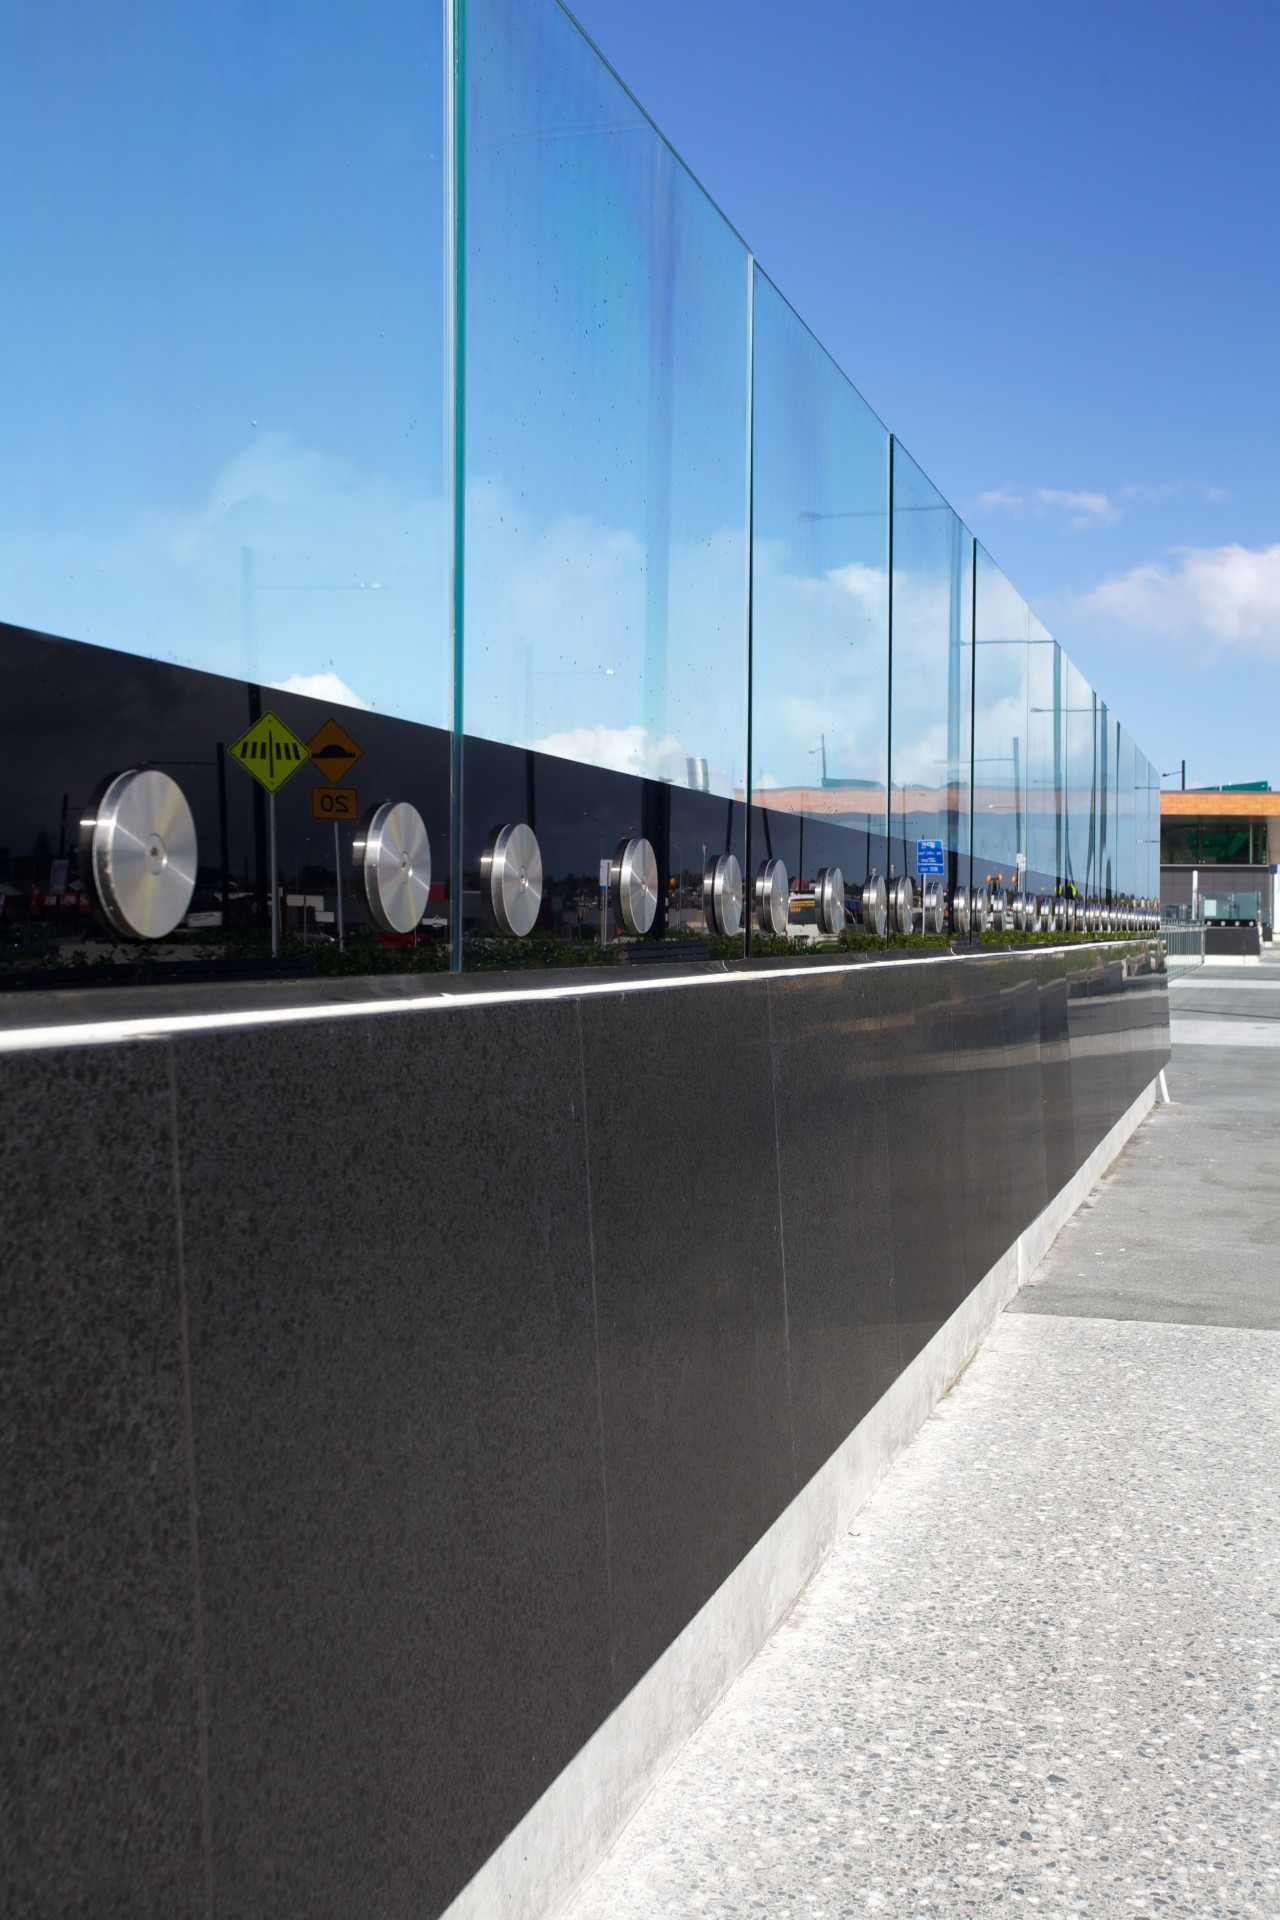 Honed basalt supplied by SCE Stone & Design architecture, facade, sky, black, teal